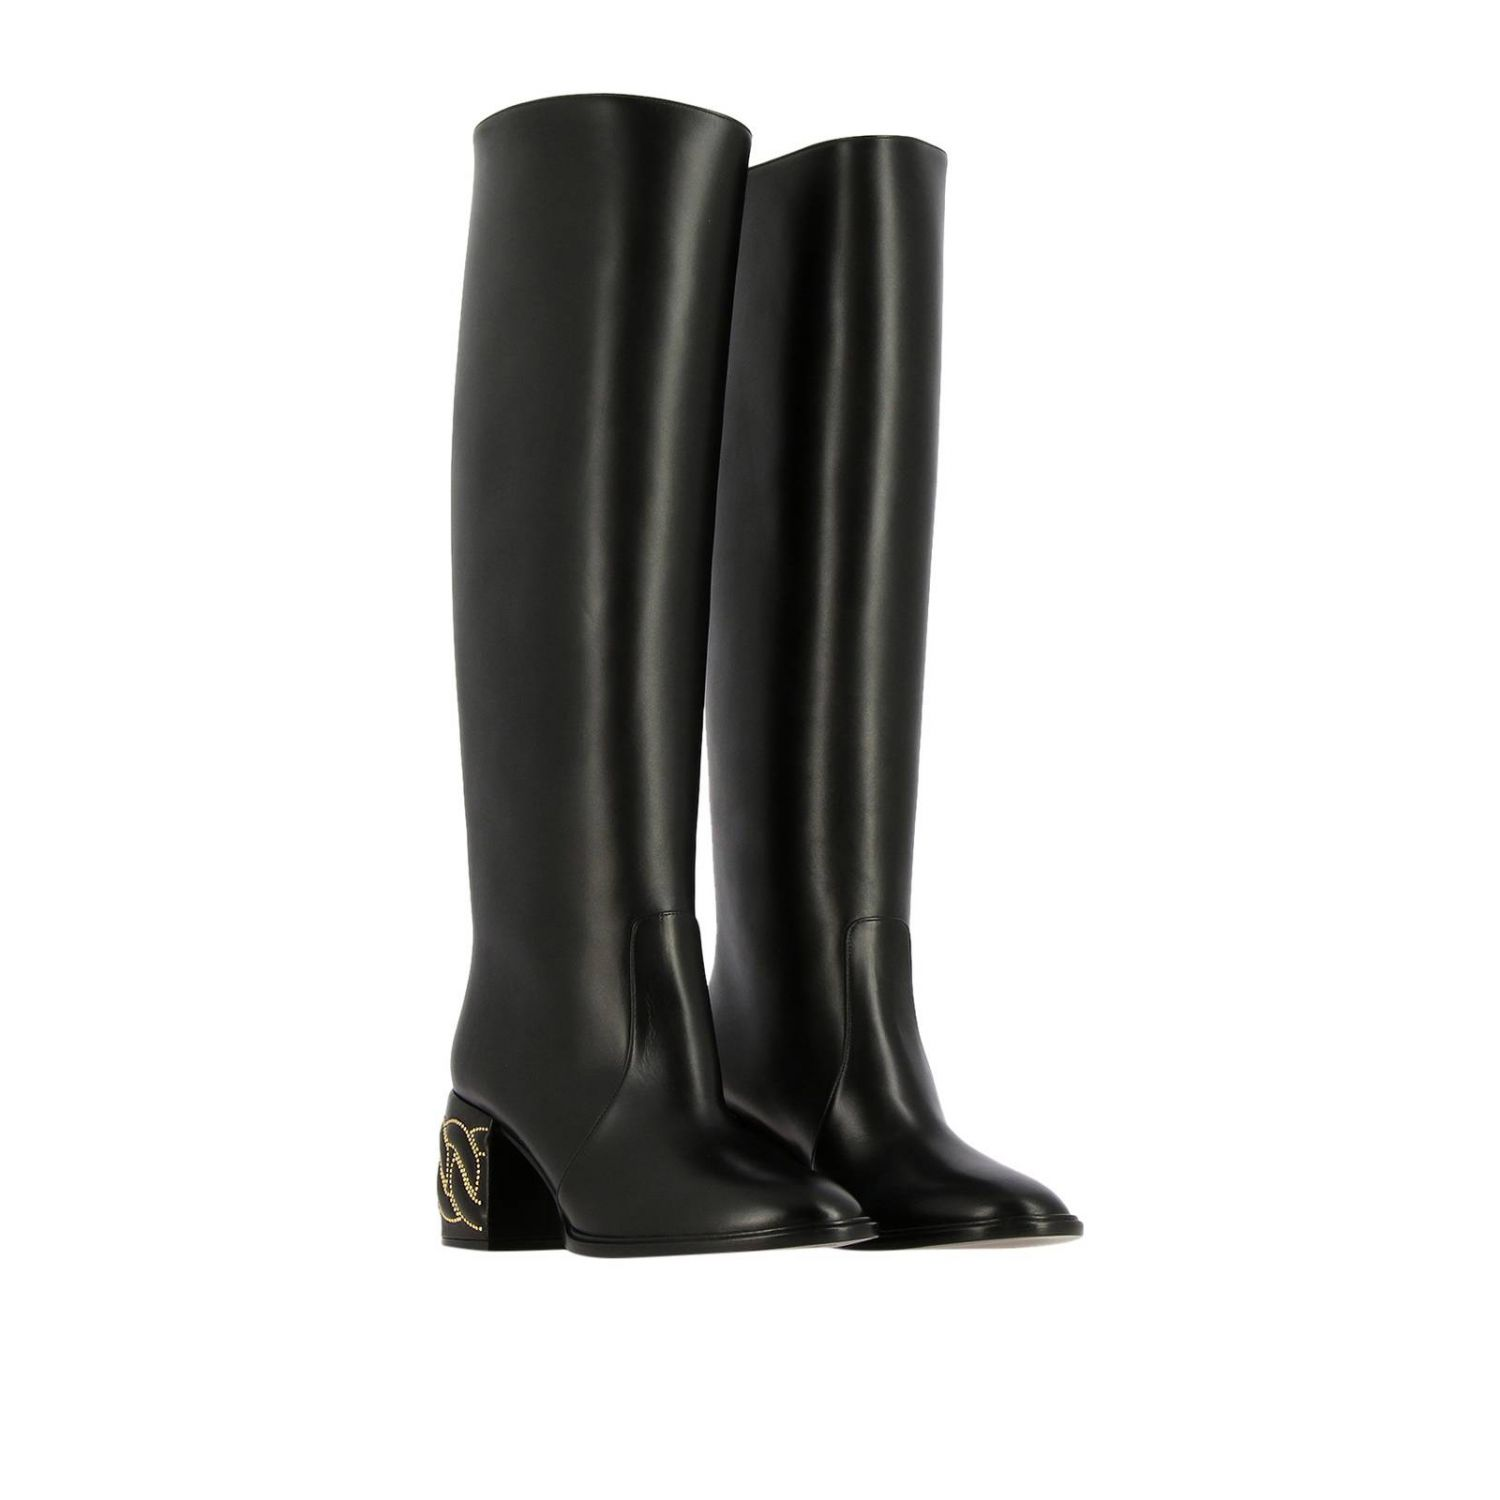 Boots women Casadei black 2